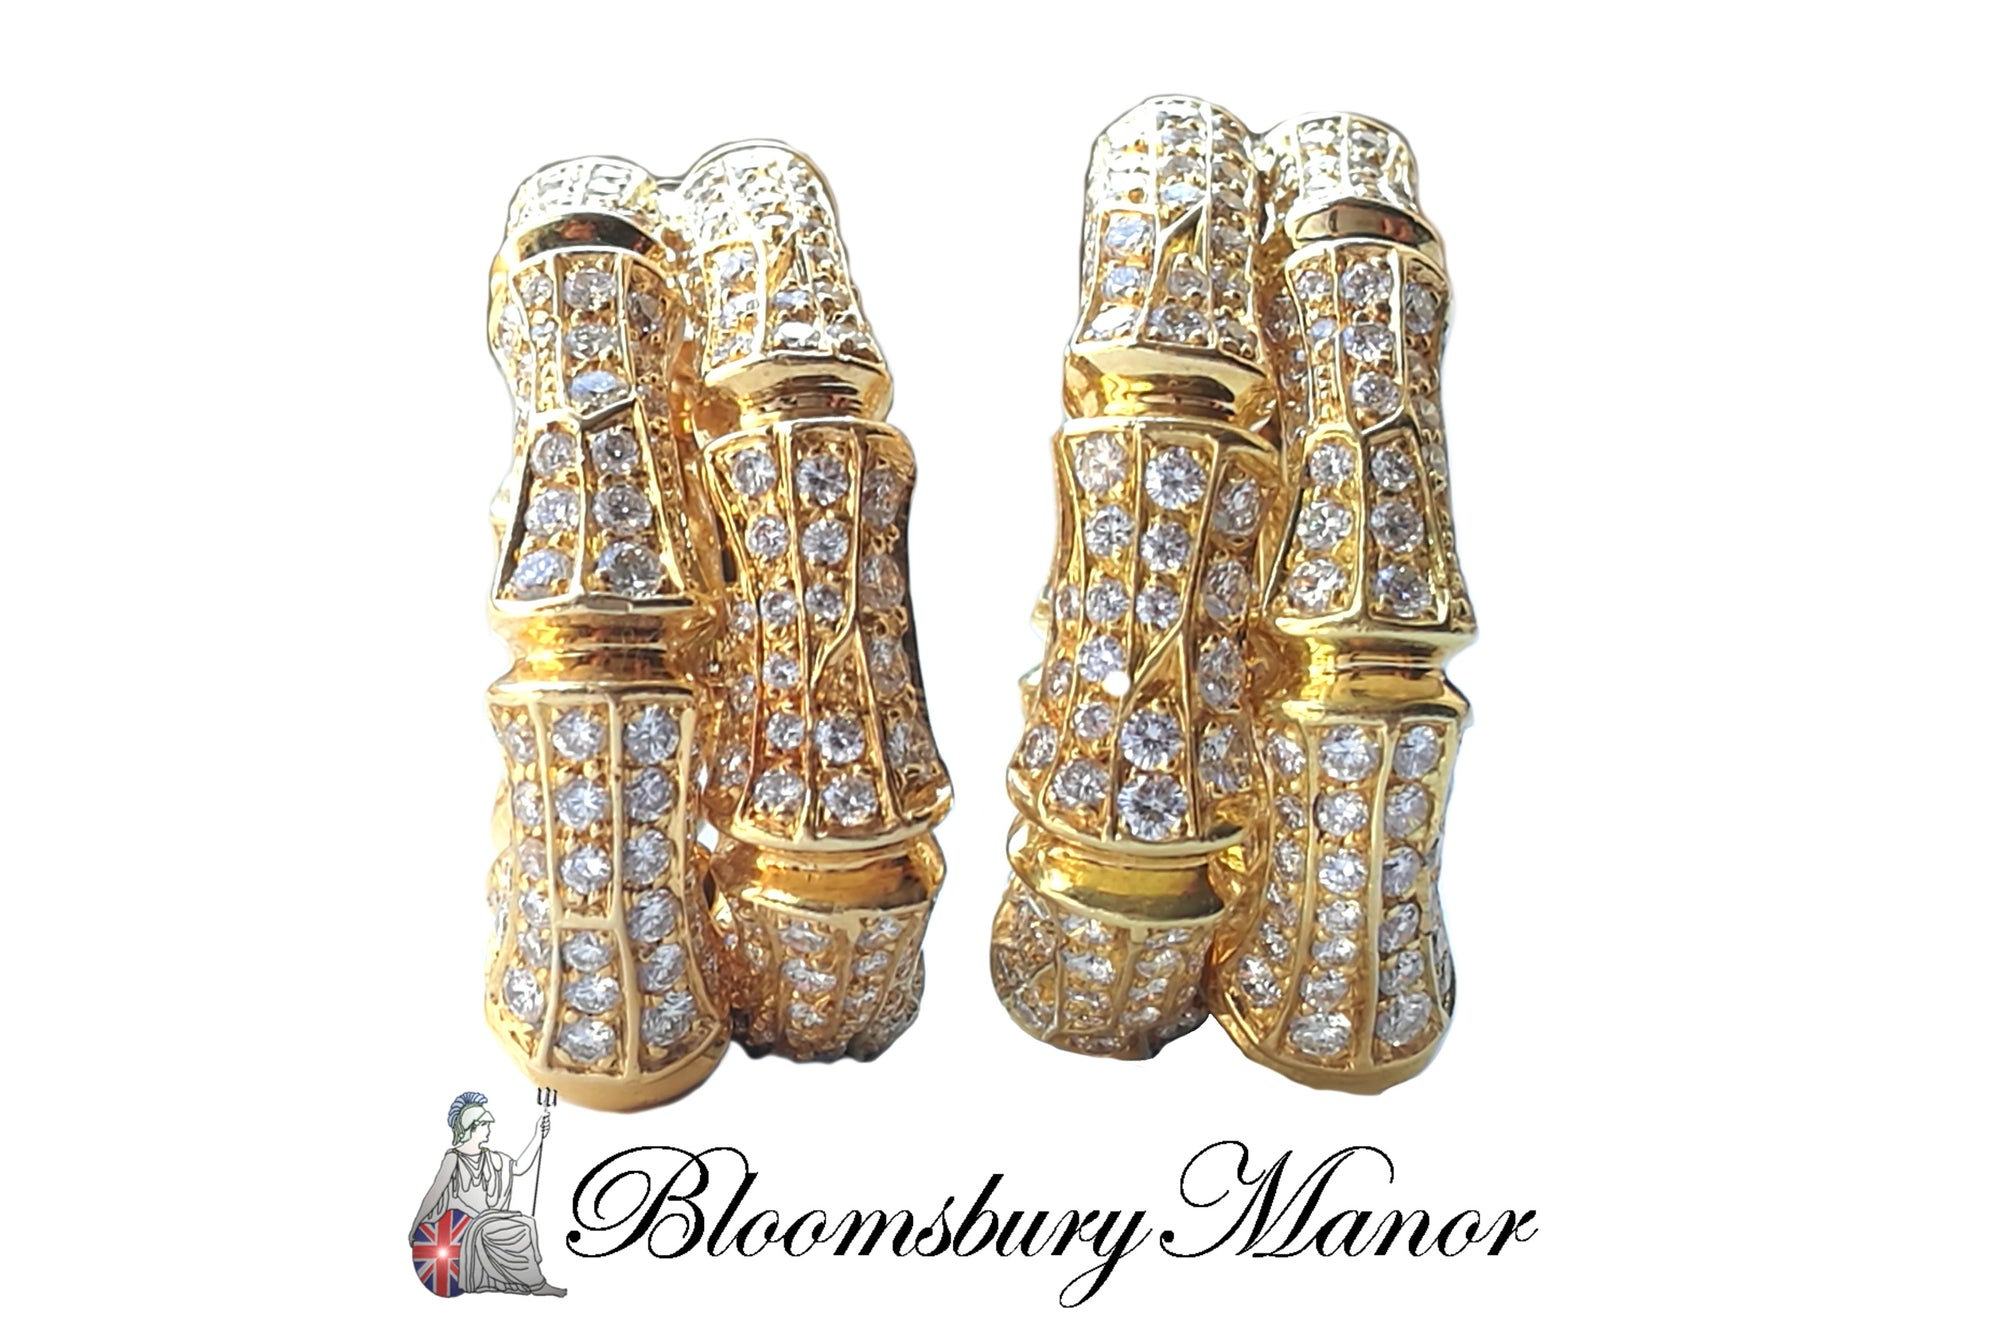 pre-owned, second hand, used, vintage, bamboo, Cartier Diamond Earrings